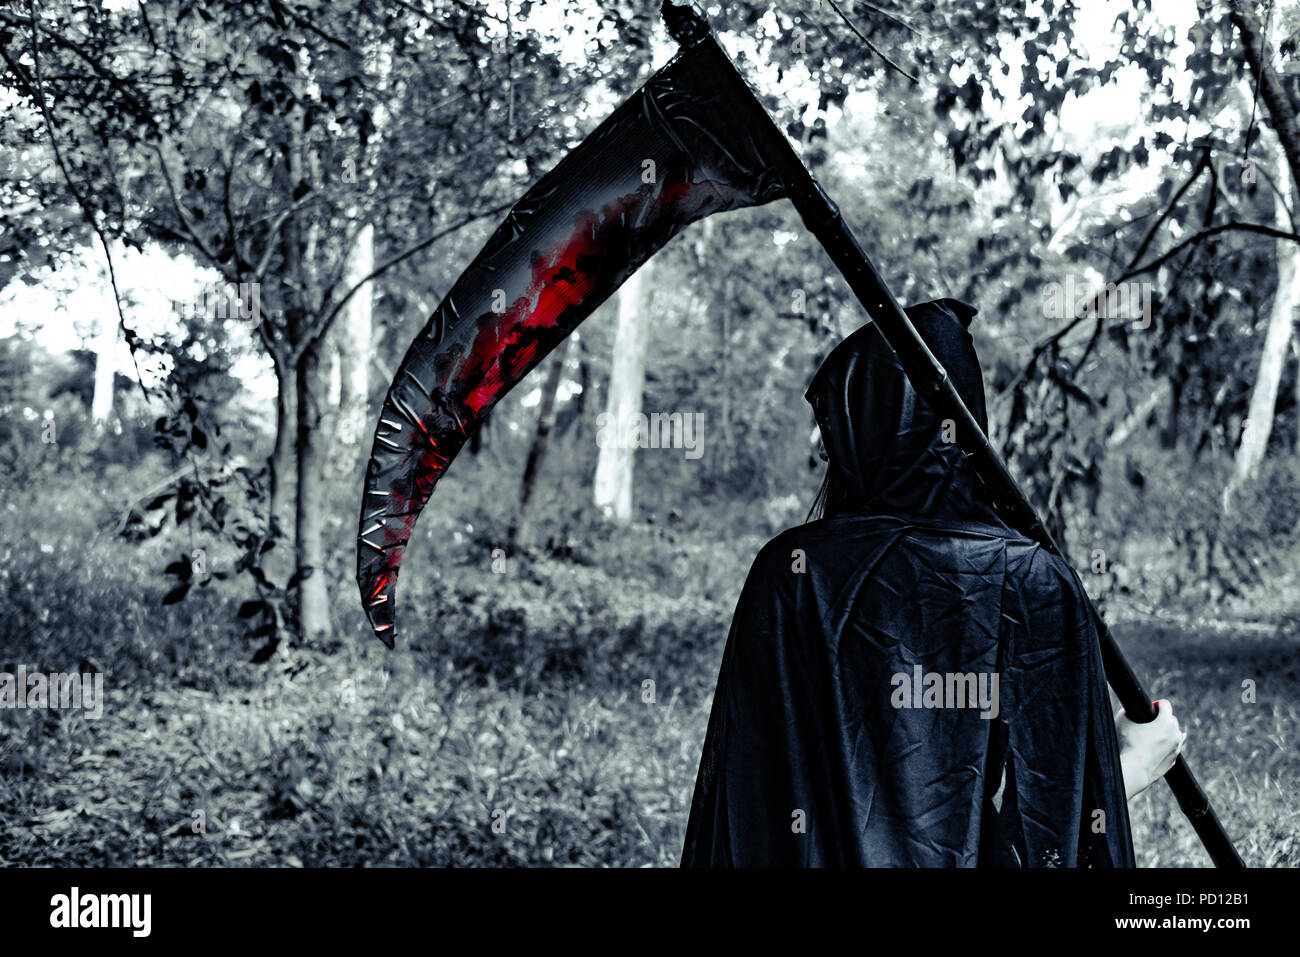 Back view of demon witch with reaper and blood in the mystery forest. Horror and Ghost concept. Halloween day and Scary scene theme. - Stock Image